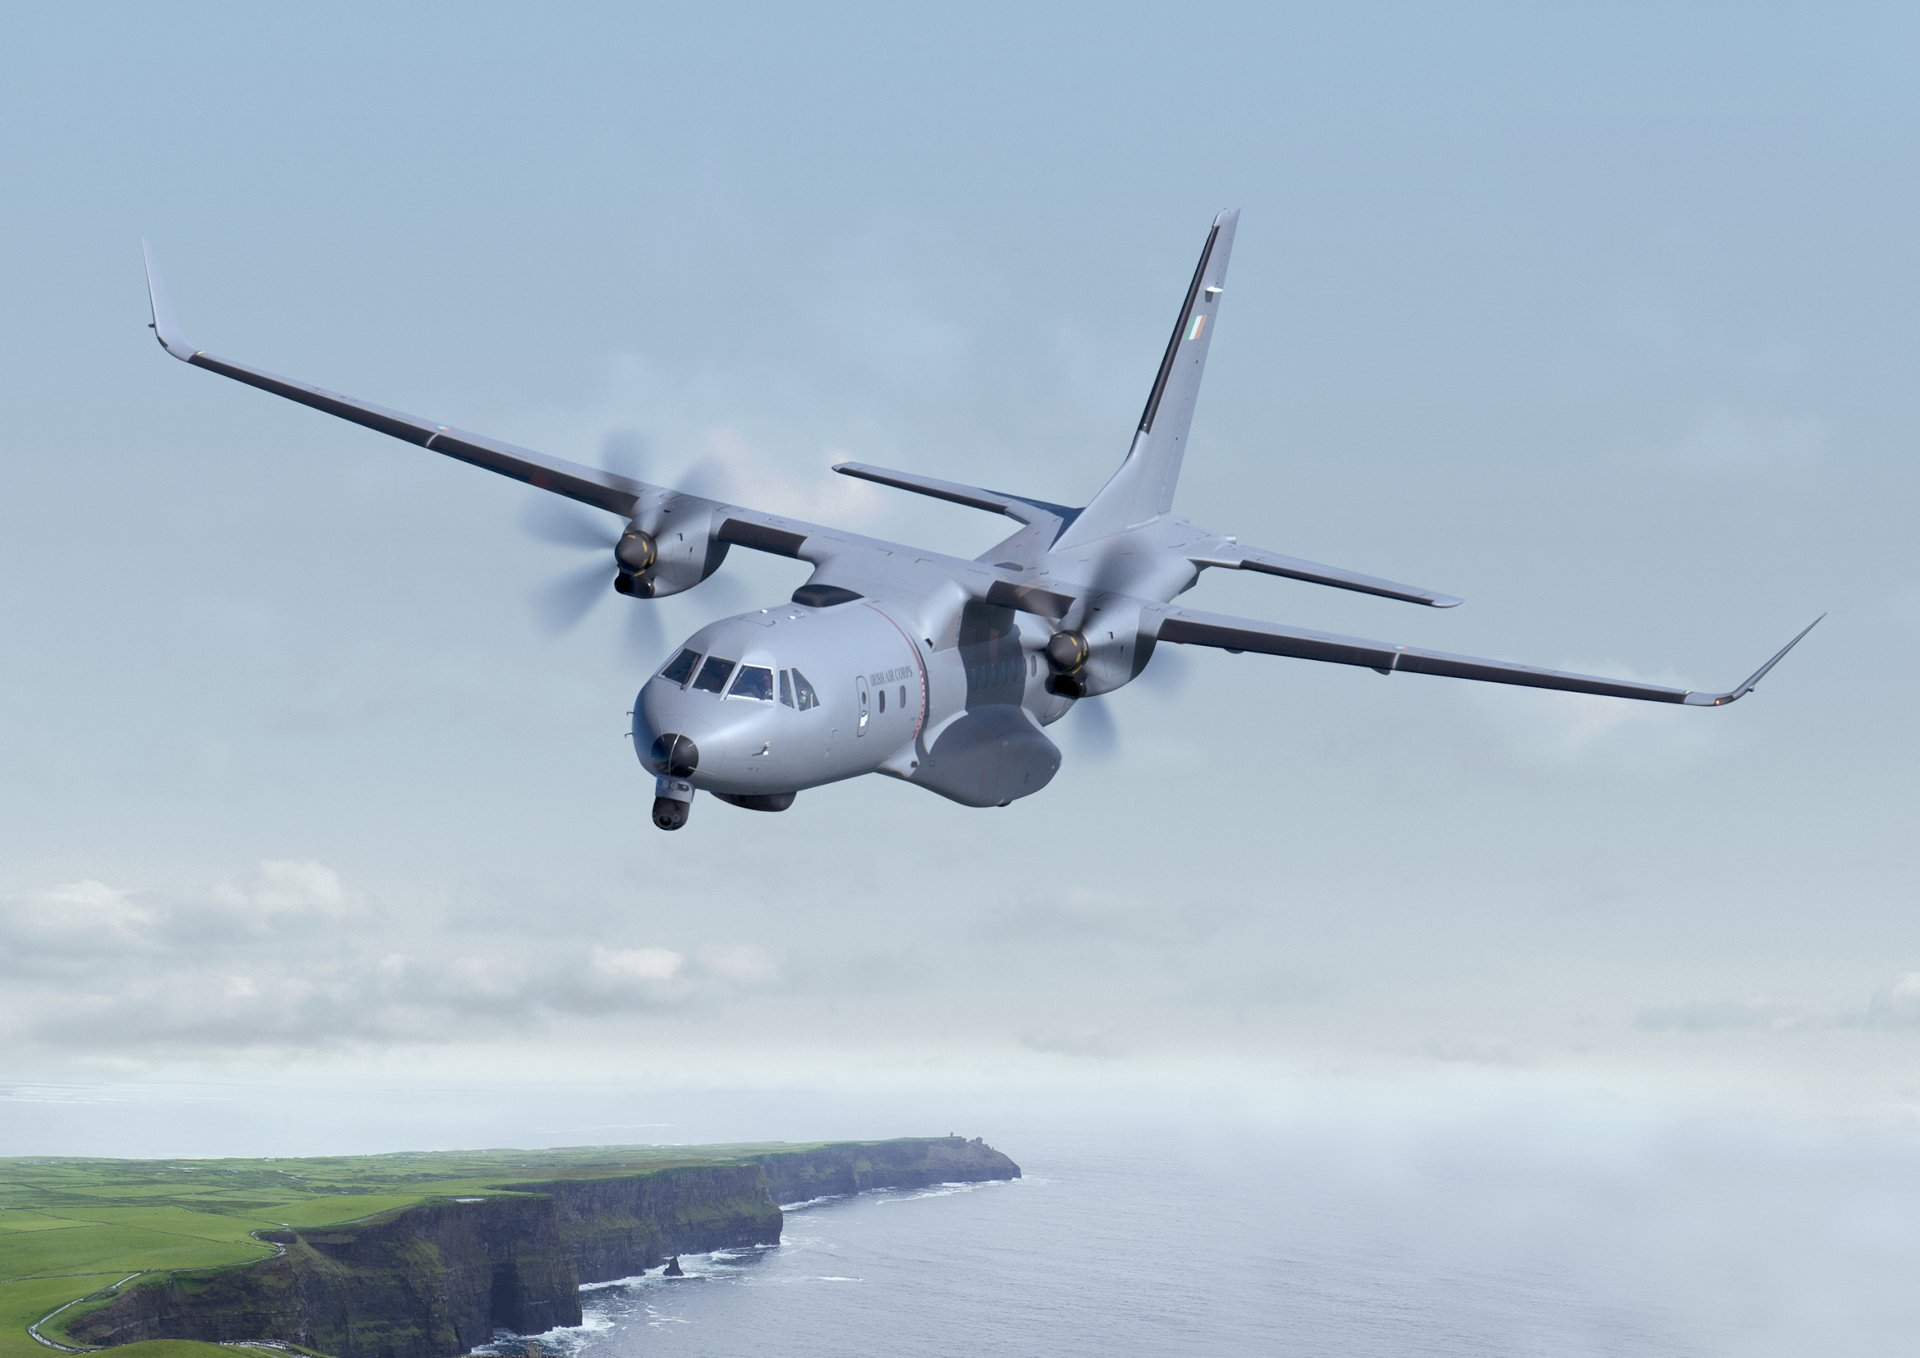 Ireland's Department of Defence's Airbus C295 medium airlifter in a maritime surveillance configuration.